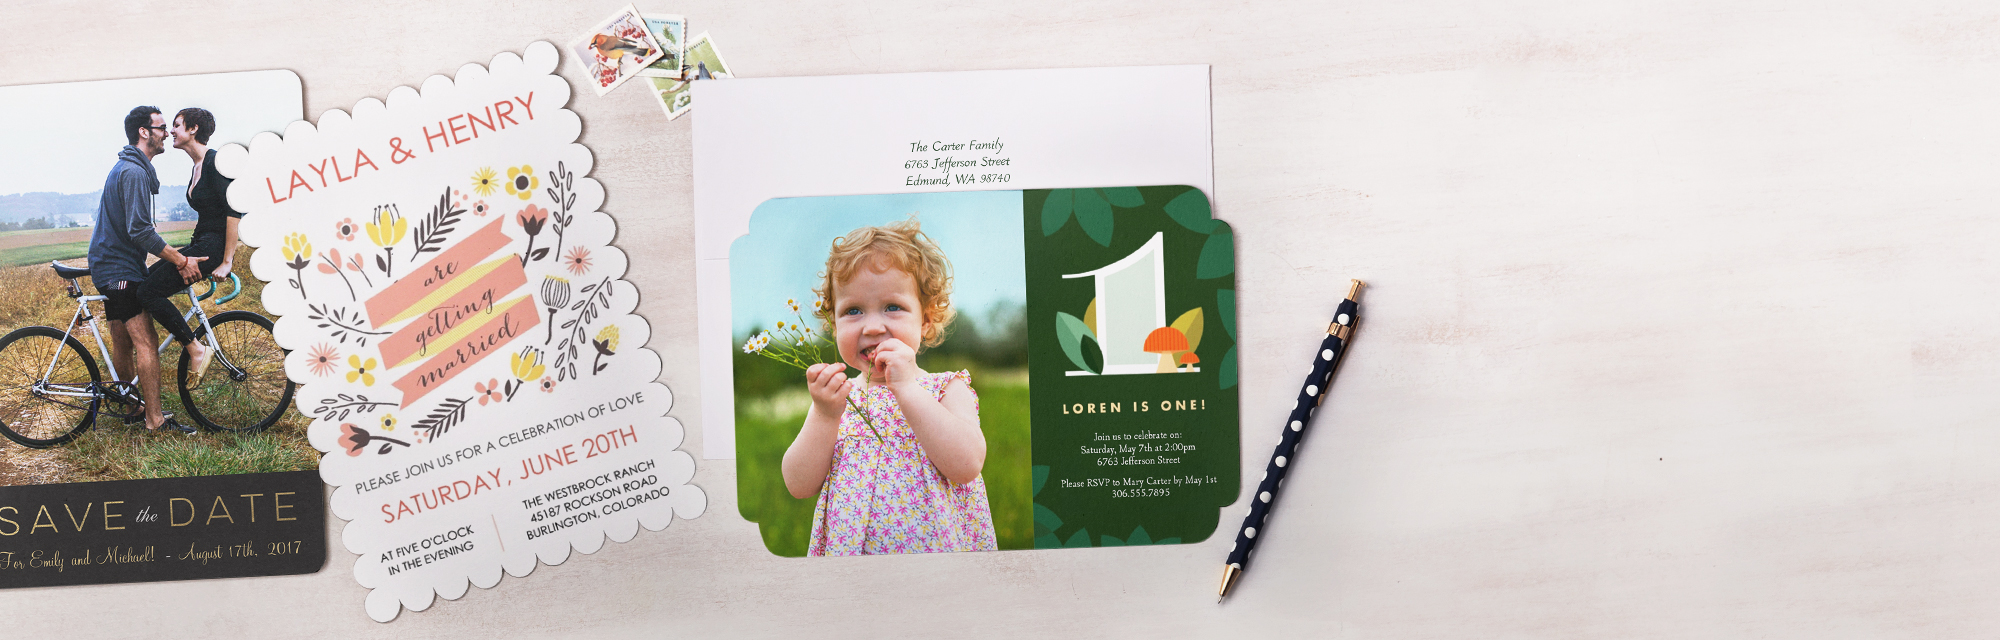 Premium Card Set Whatever the occasion, send beautiful announcements, invitations and more with the card set that has it all.